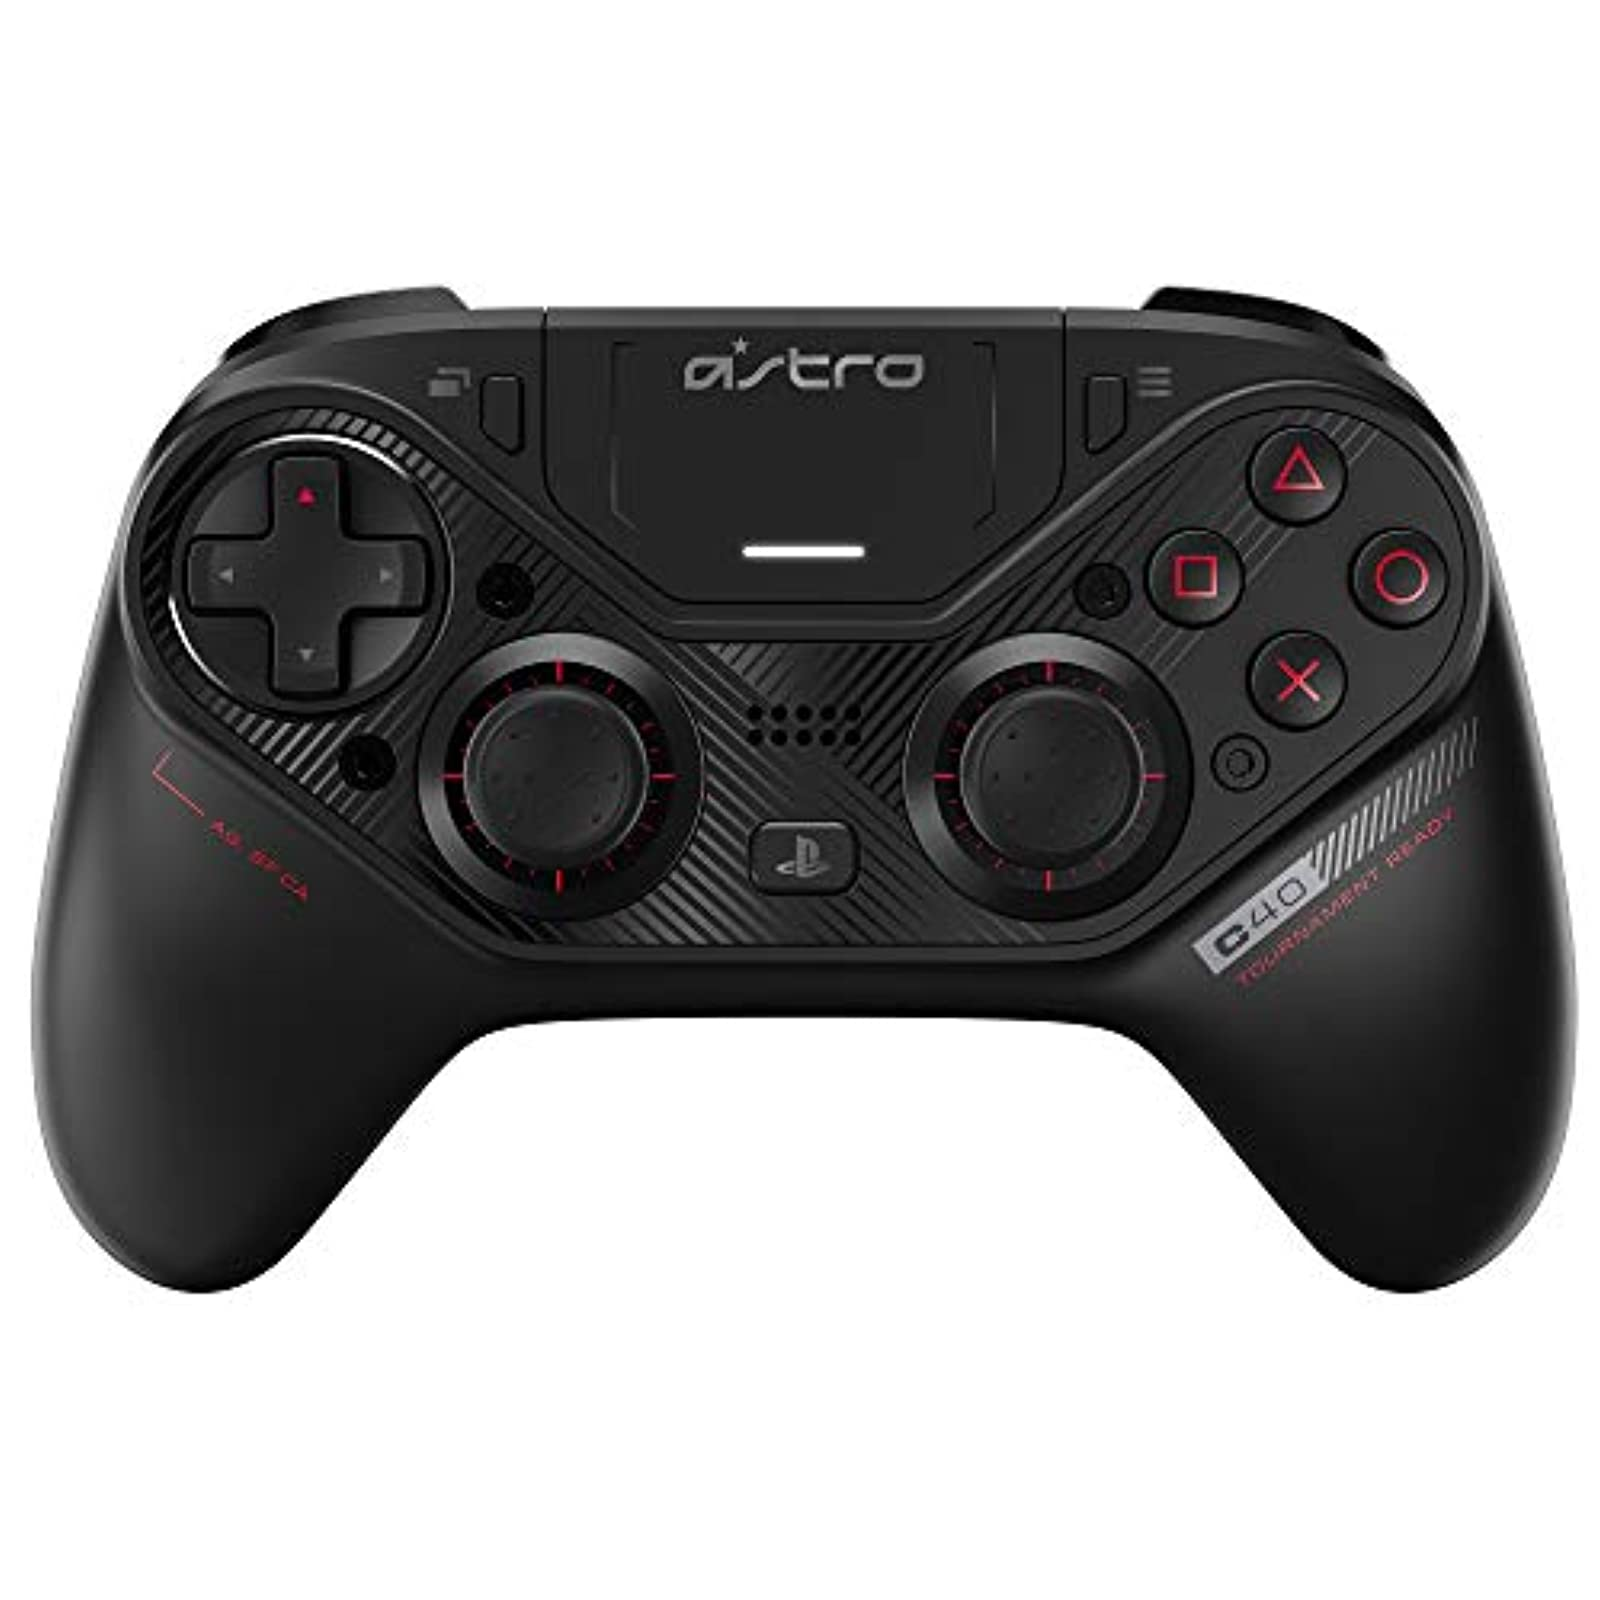 Astro Gaming C40 Tr Controller For PlayStation 4 PS4 Black Gamepad